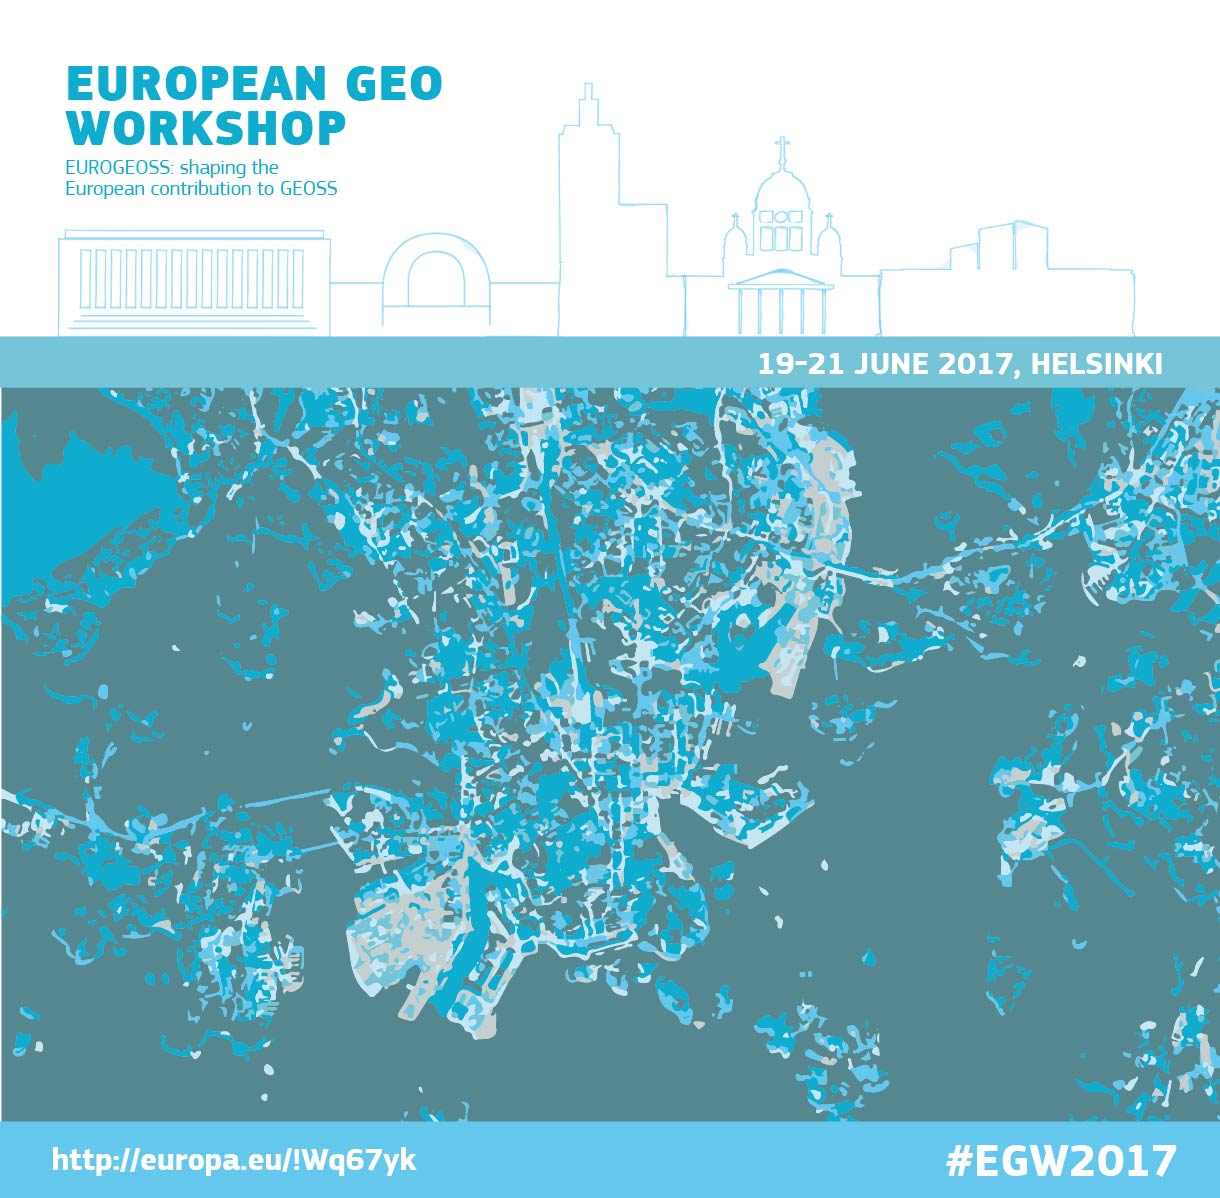 European GEO Workshop 2017